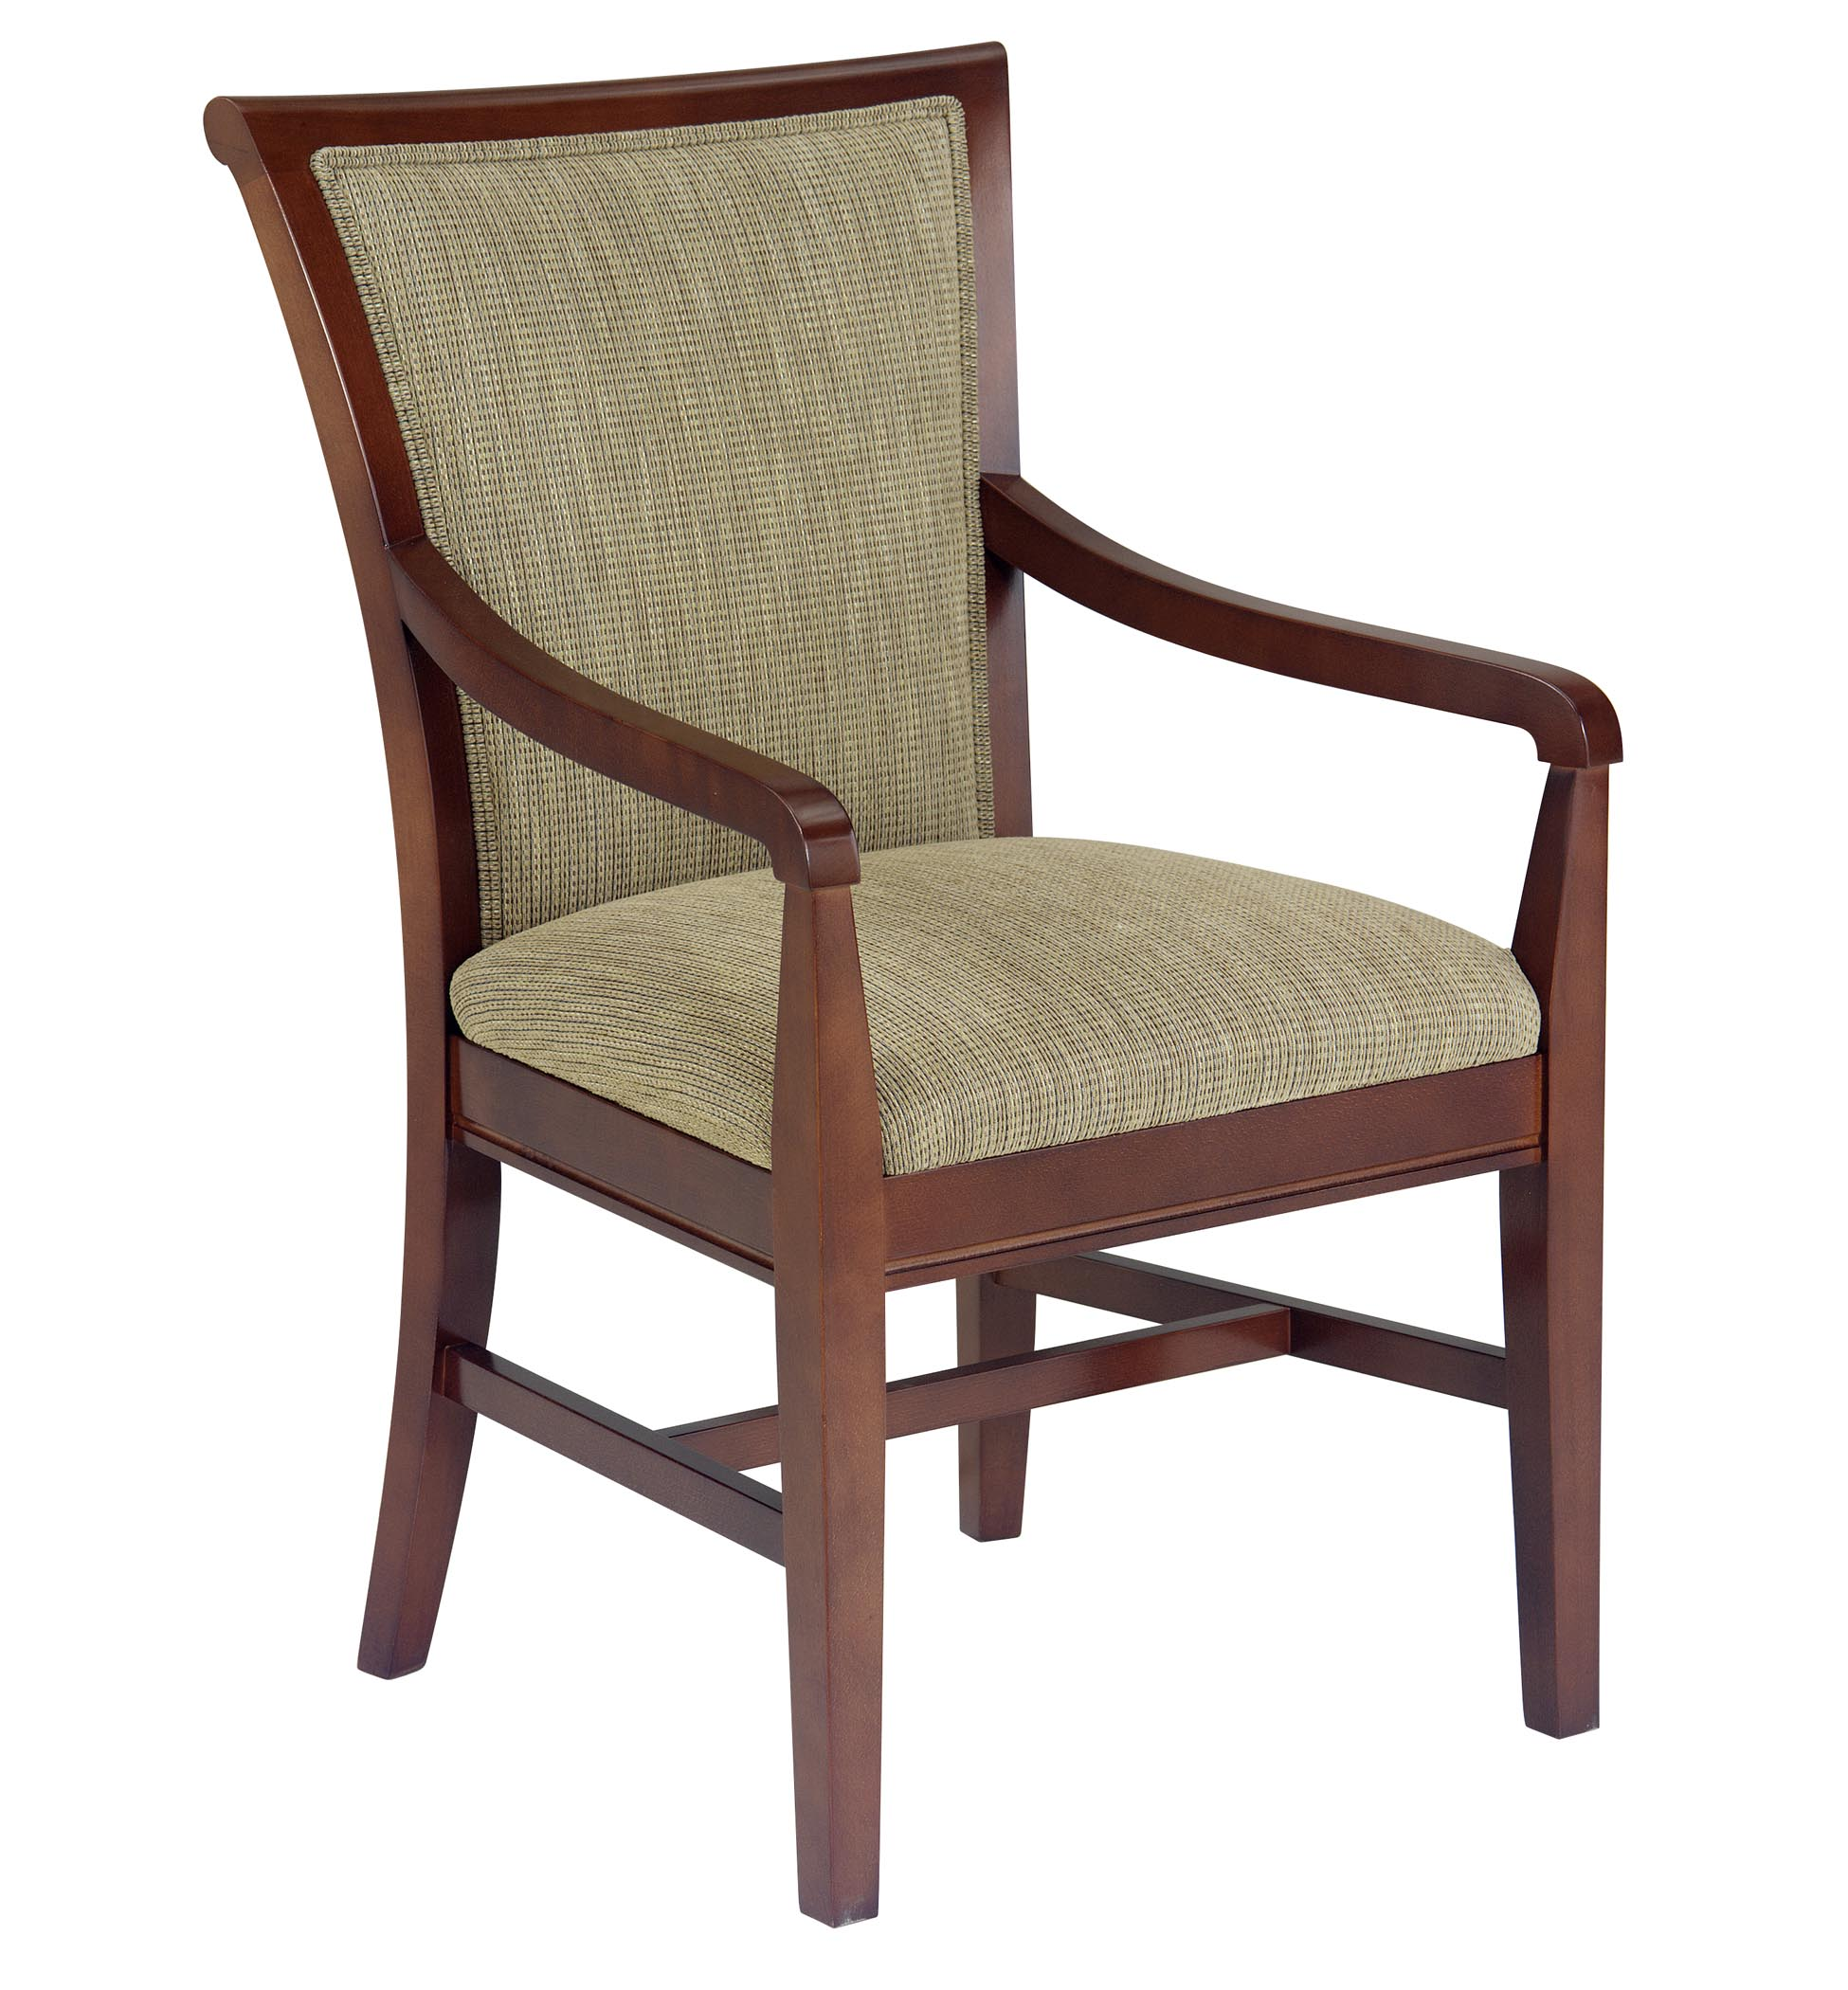 chair 1 2 accent chairs with arms under 100 lg1067 wood arm